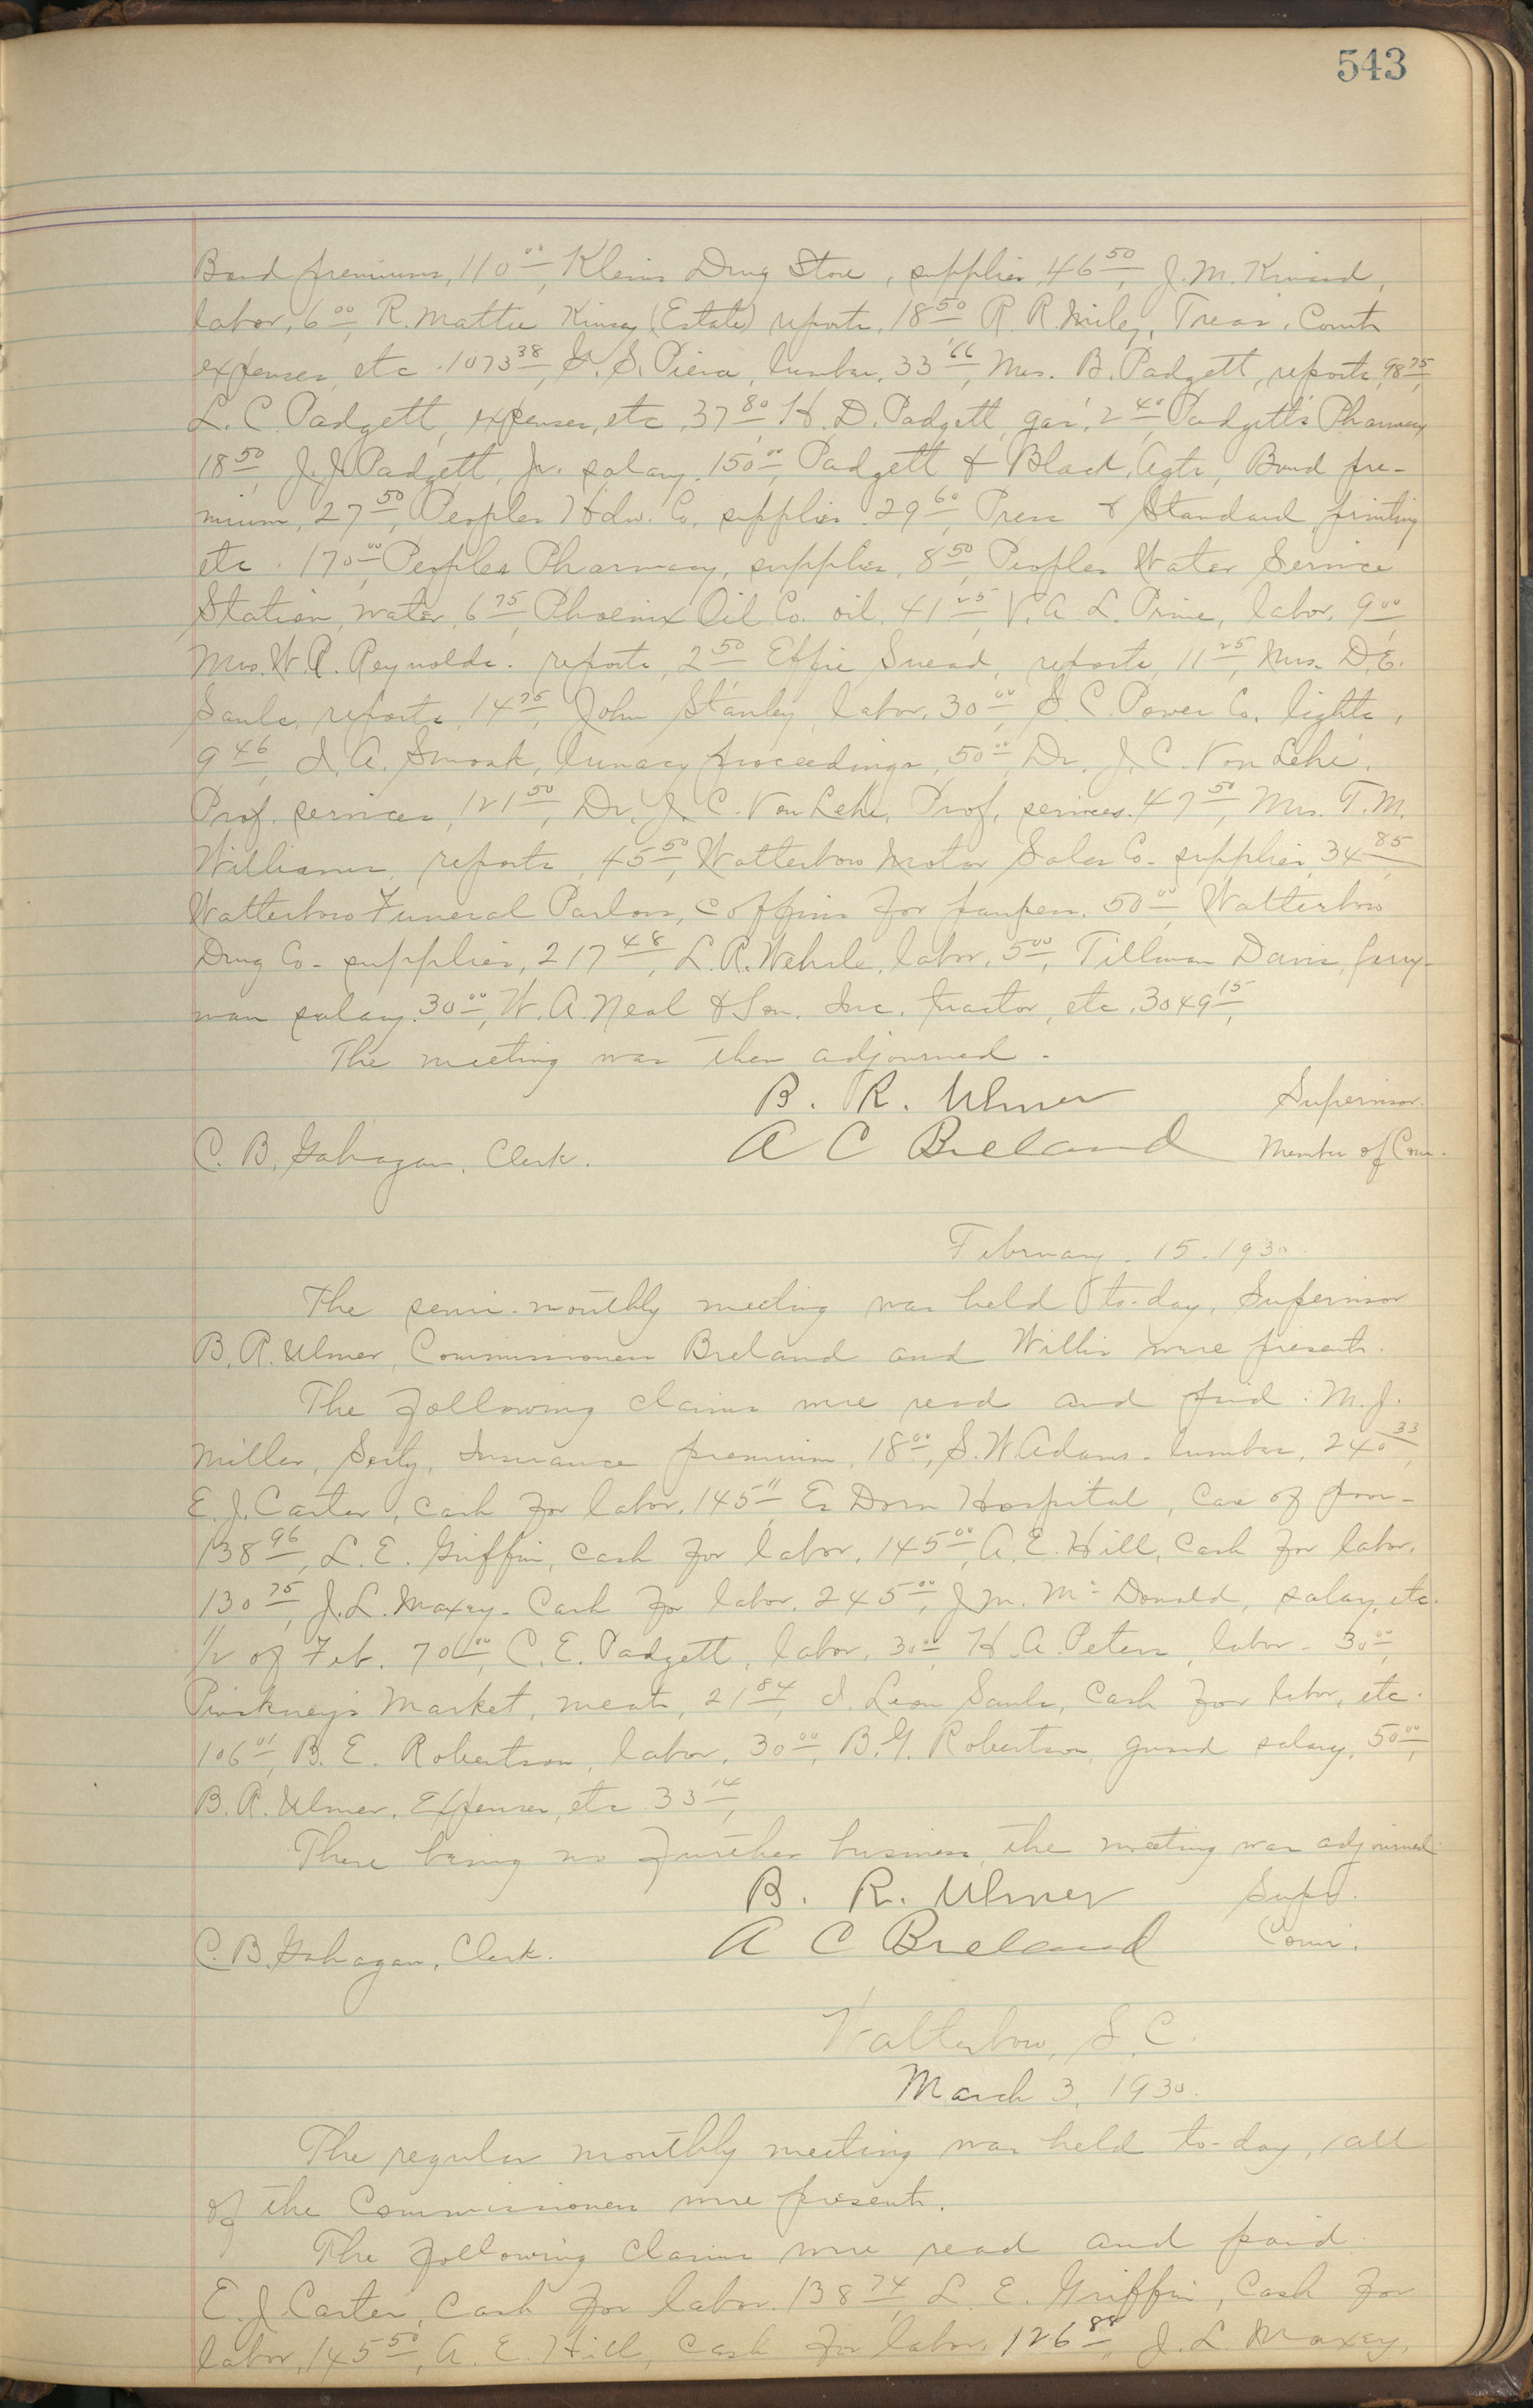 Colleton County Highway Commission Ledger, Page 543